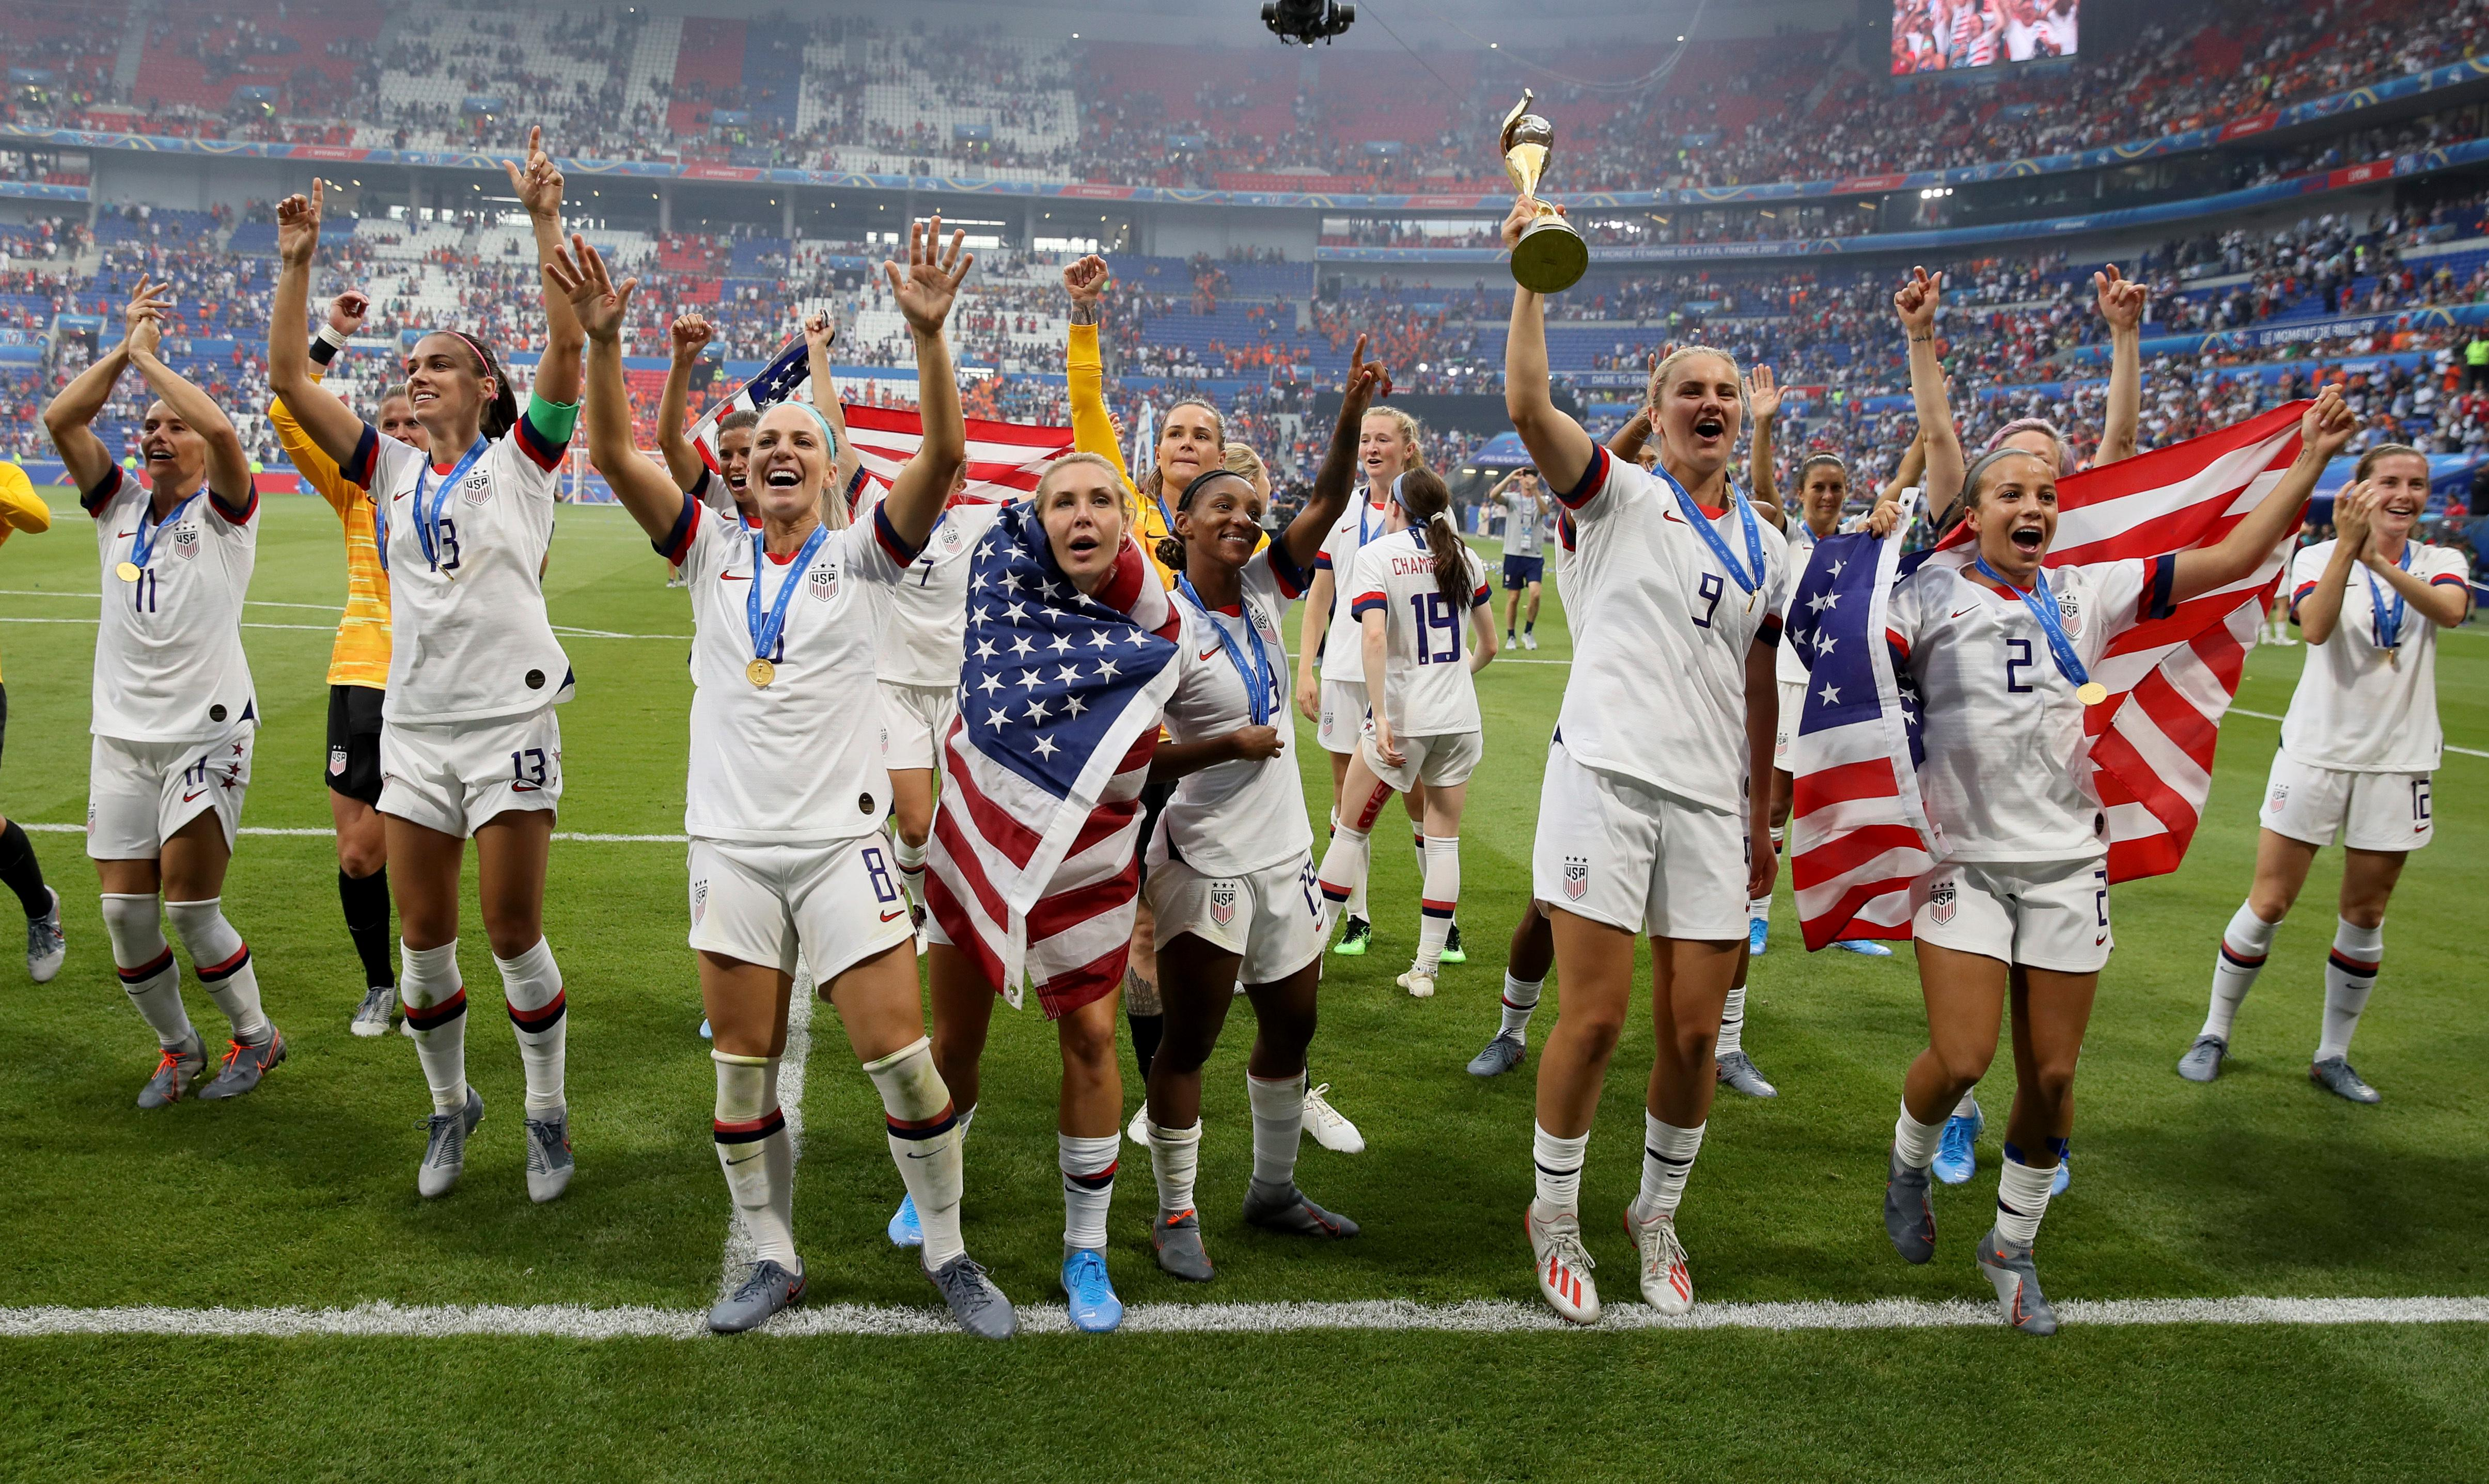 United States players celebrate their victory in the Women's World Cup final soccer match between US and The Netherlands at the Stade de Lyon in Decines, outside Lyon, France, Sunday, July 7, 2019. US won 2:0. (AP Photo/David Vincent)